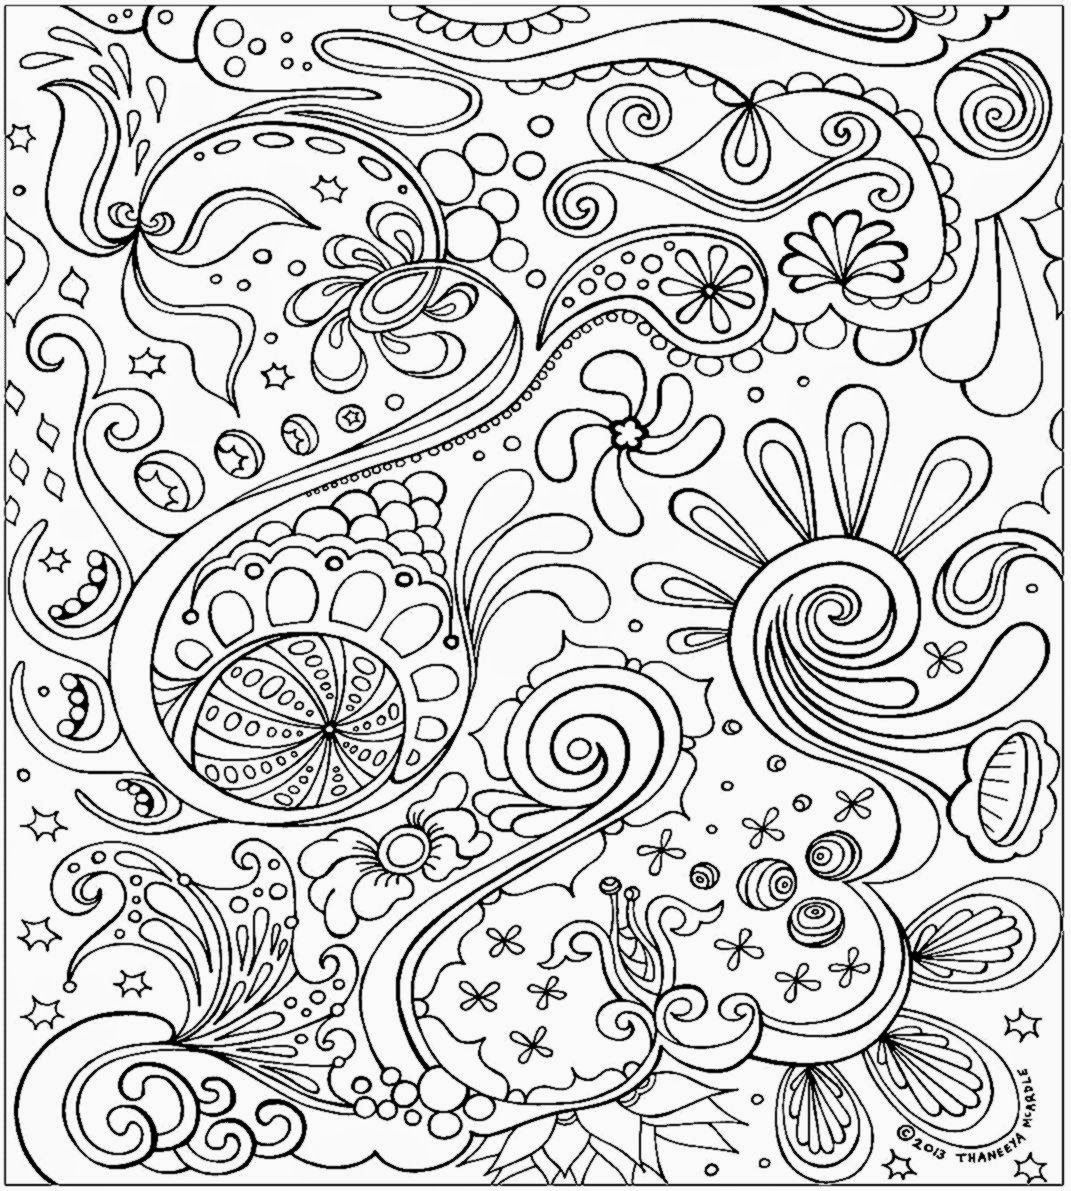 Abstract Coloring Pages - coloring pages for adults and teens ...